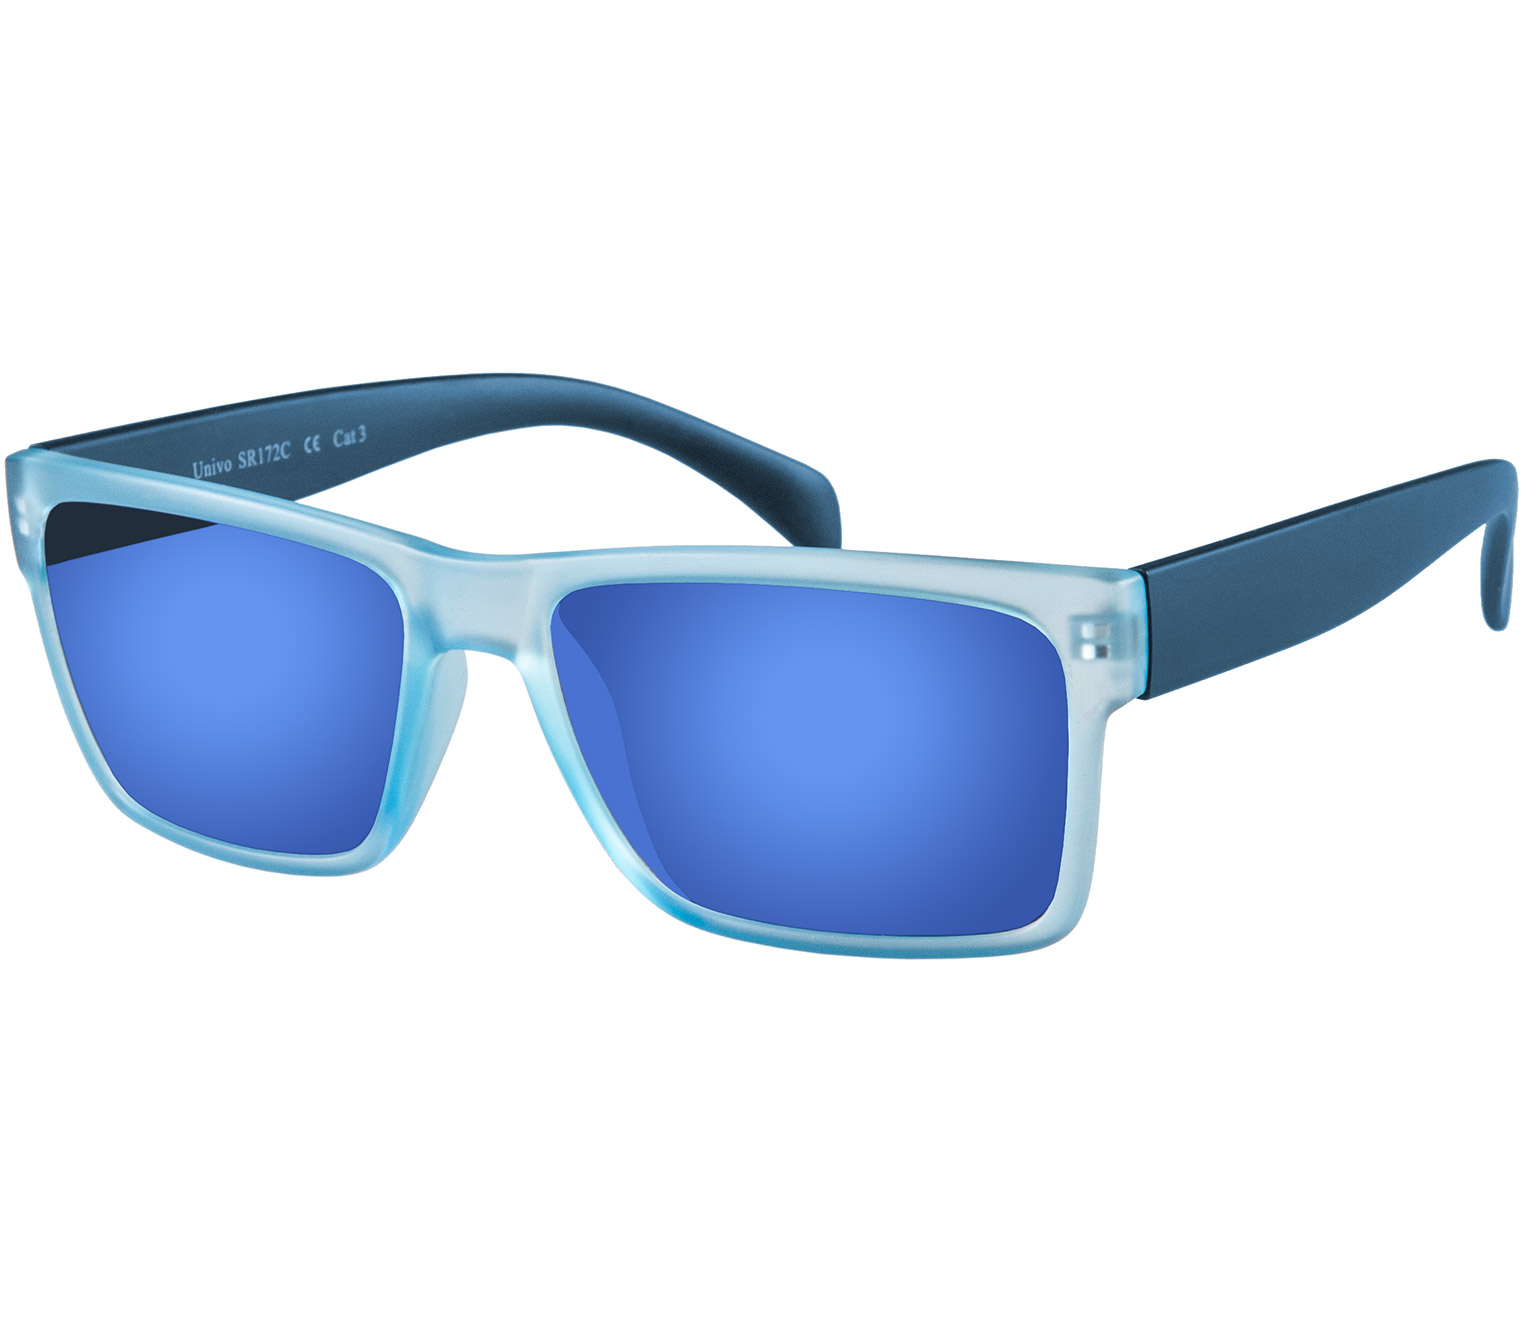 Main Image (Angle) - Alicante (Blue) Sunglasses